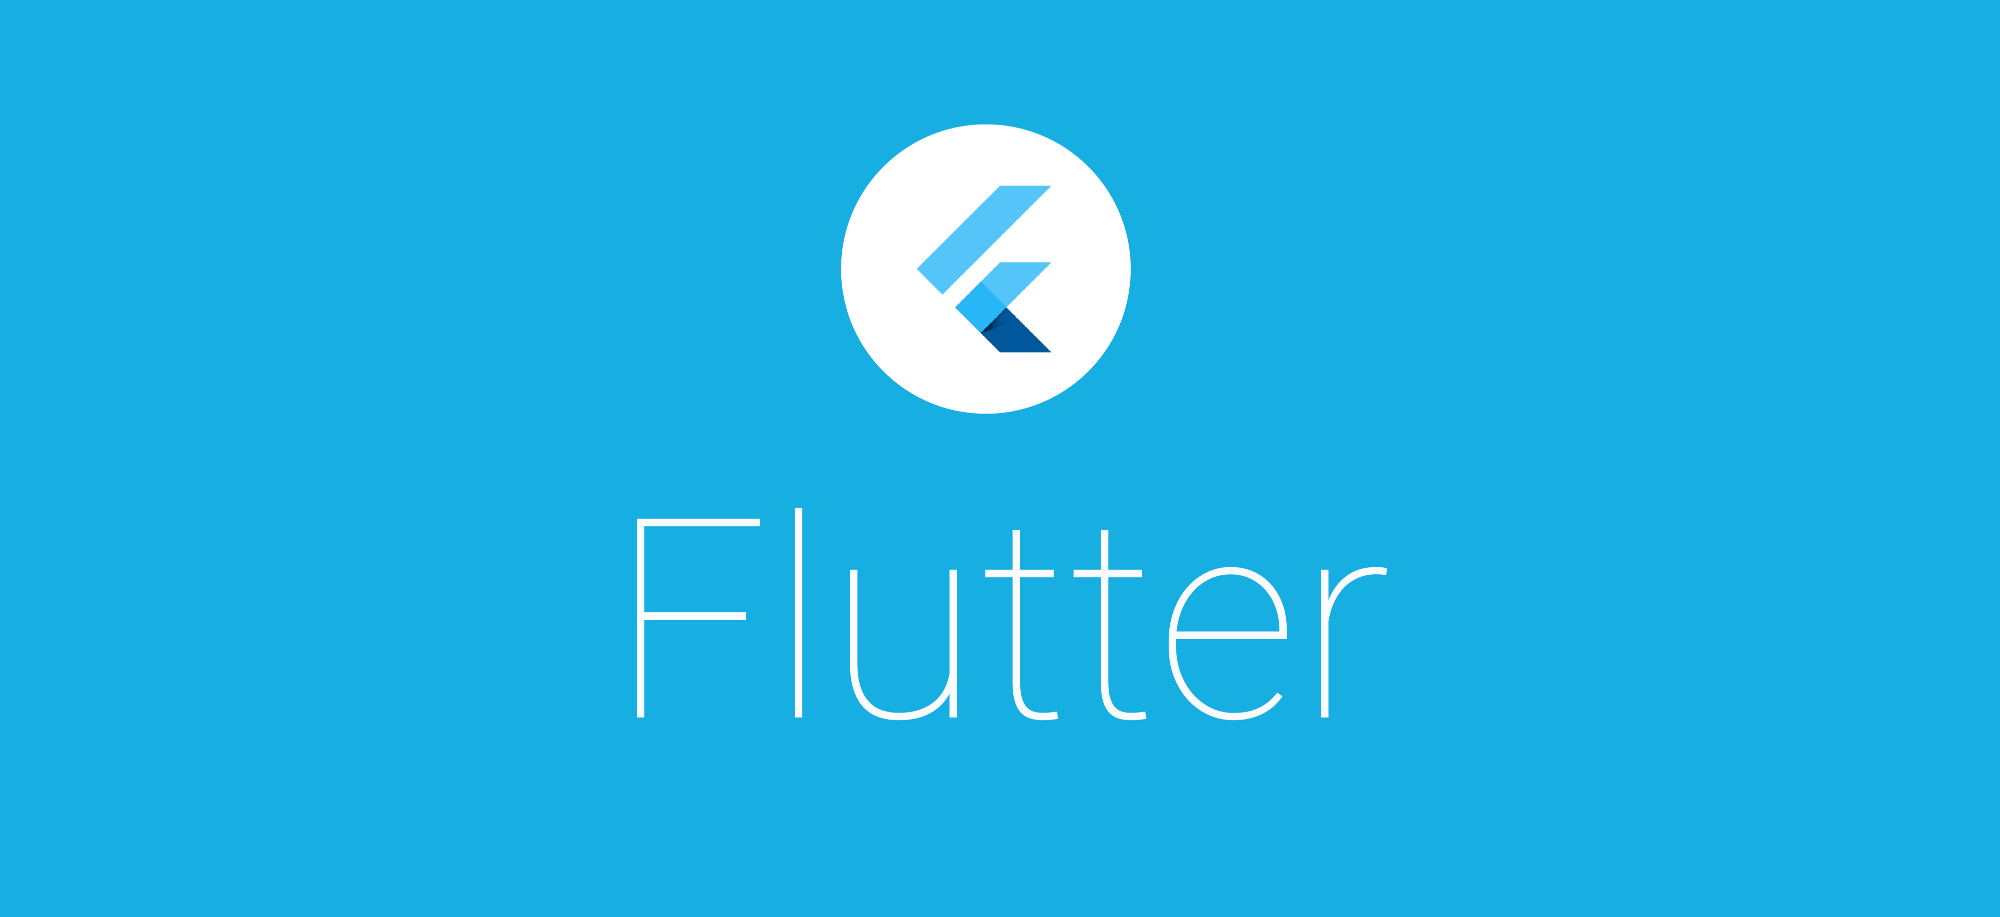 Implementing Redux architecture with Flutter - ProAndroidDev